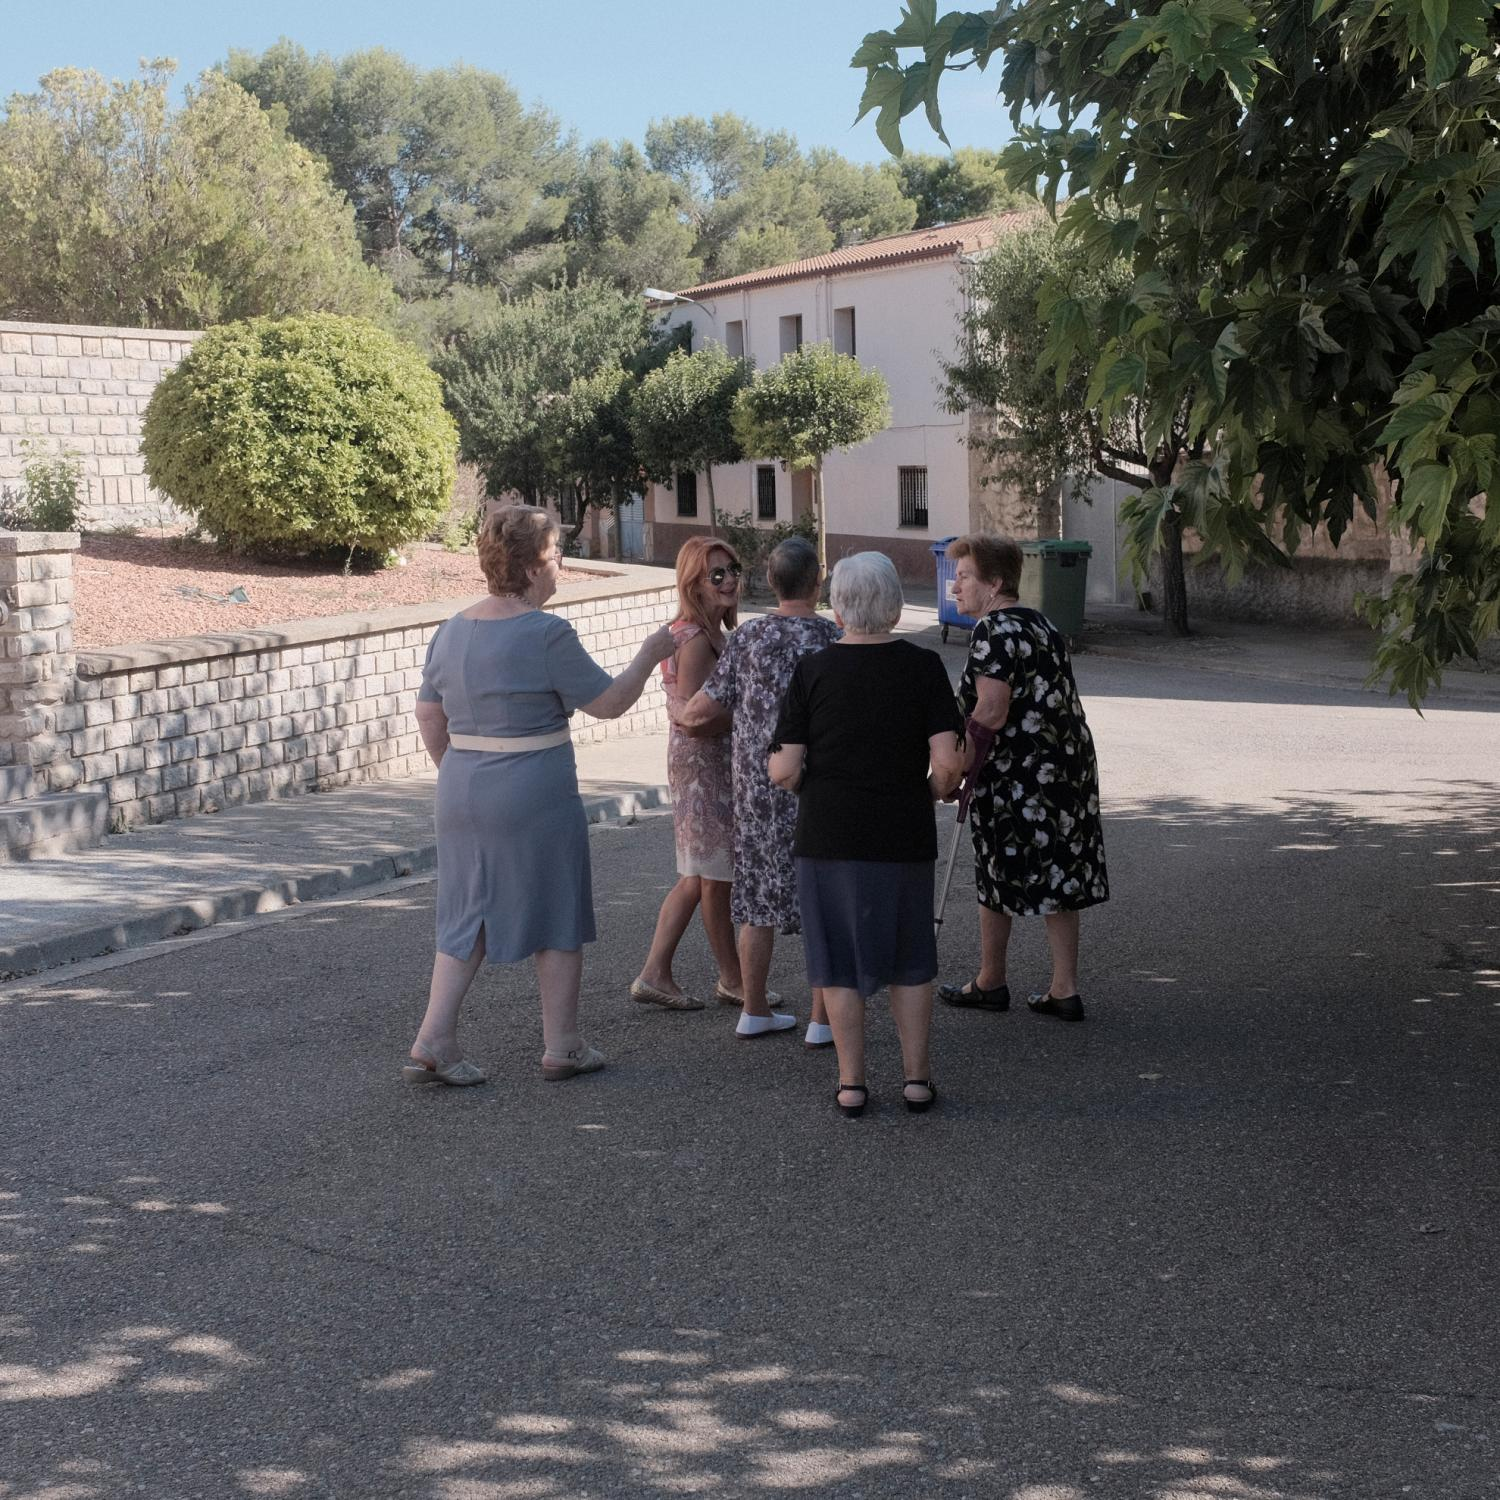 Old women group speaking after the church mass in Sodeto (Huesca). After the Spanish civil war in 1936, under Francisco Franco�s dictatorship, an agriculture reform was enforced leading to the building of more than 300 new towns all around Spain. This towns were populated with people coming from other rural impoverished areas but most of them are in high risk of disappearing because the new generations are moving to cities and abandoning these areas. Copyright: Spanish photojournalist Andoni Lubaki.